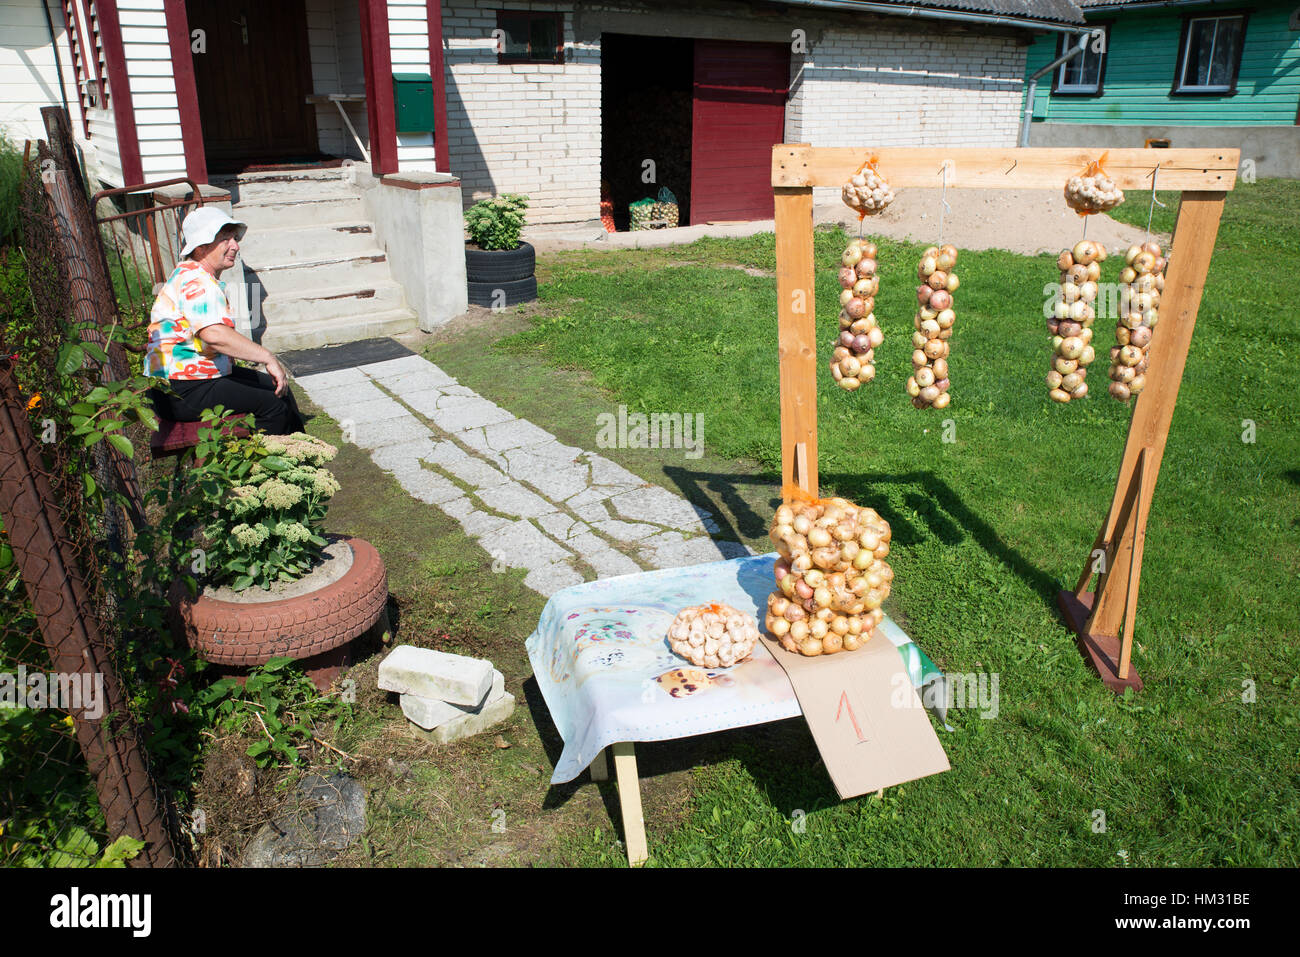 An Old Believer woman selling onion bundles in front of her house, Kolkja, Tartu county, Estonia - Stock Image